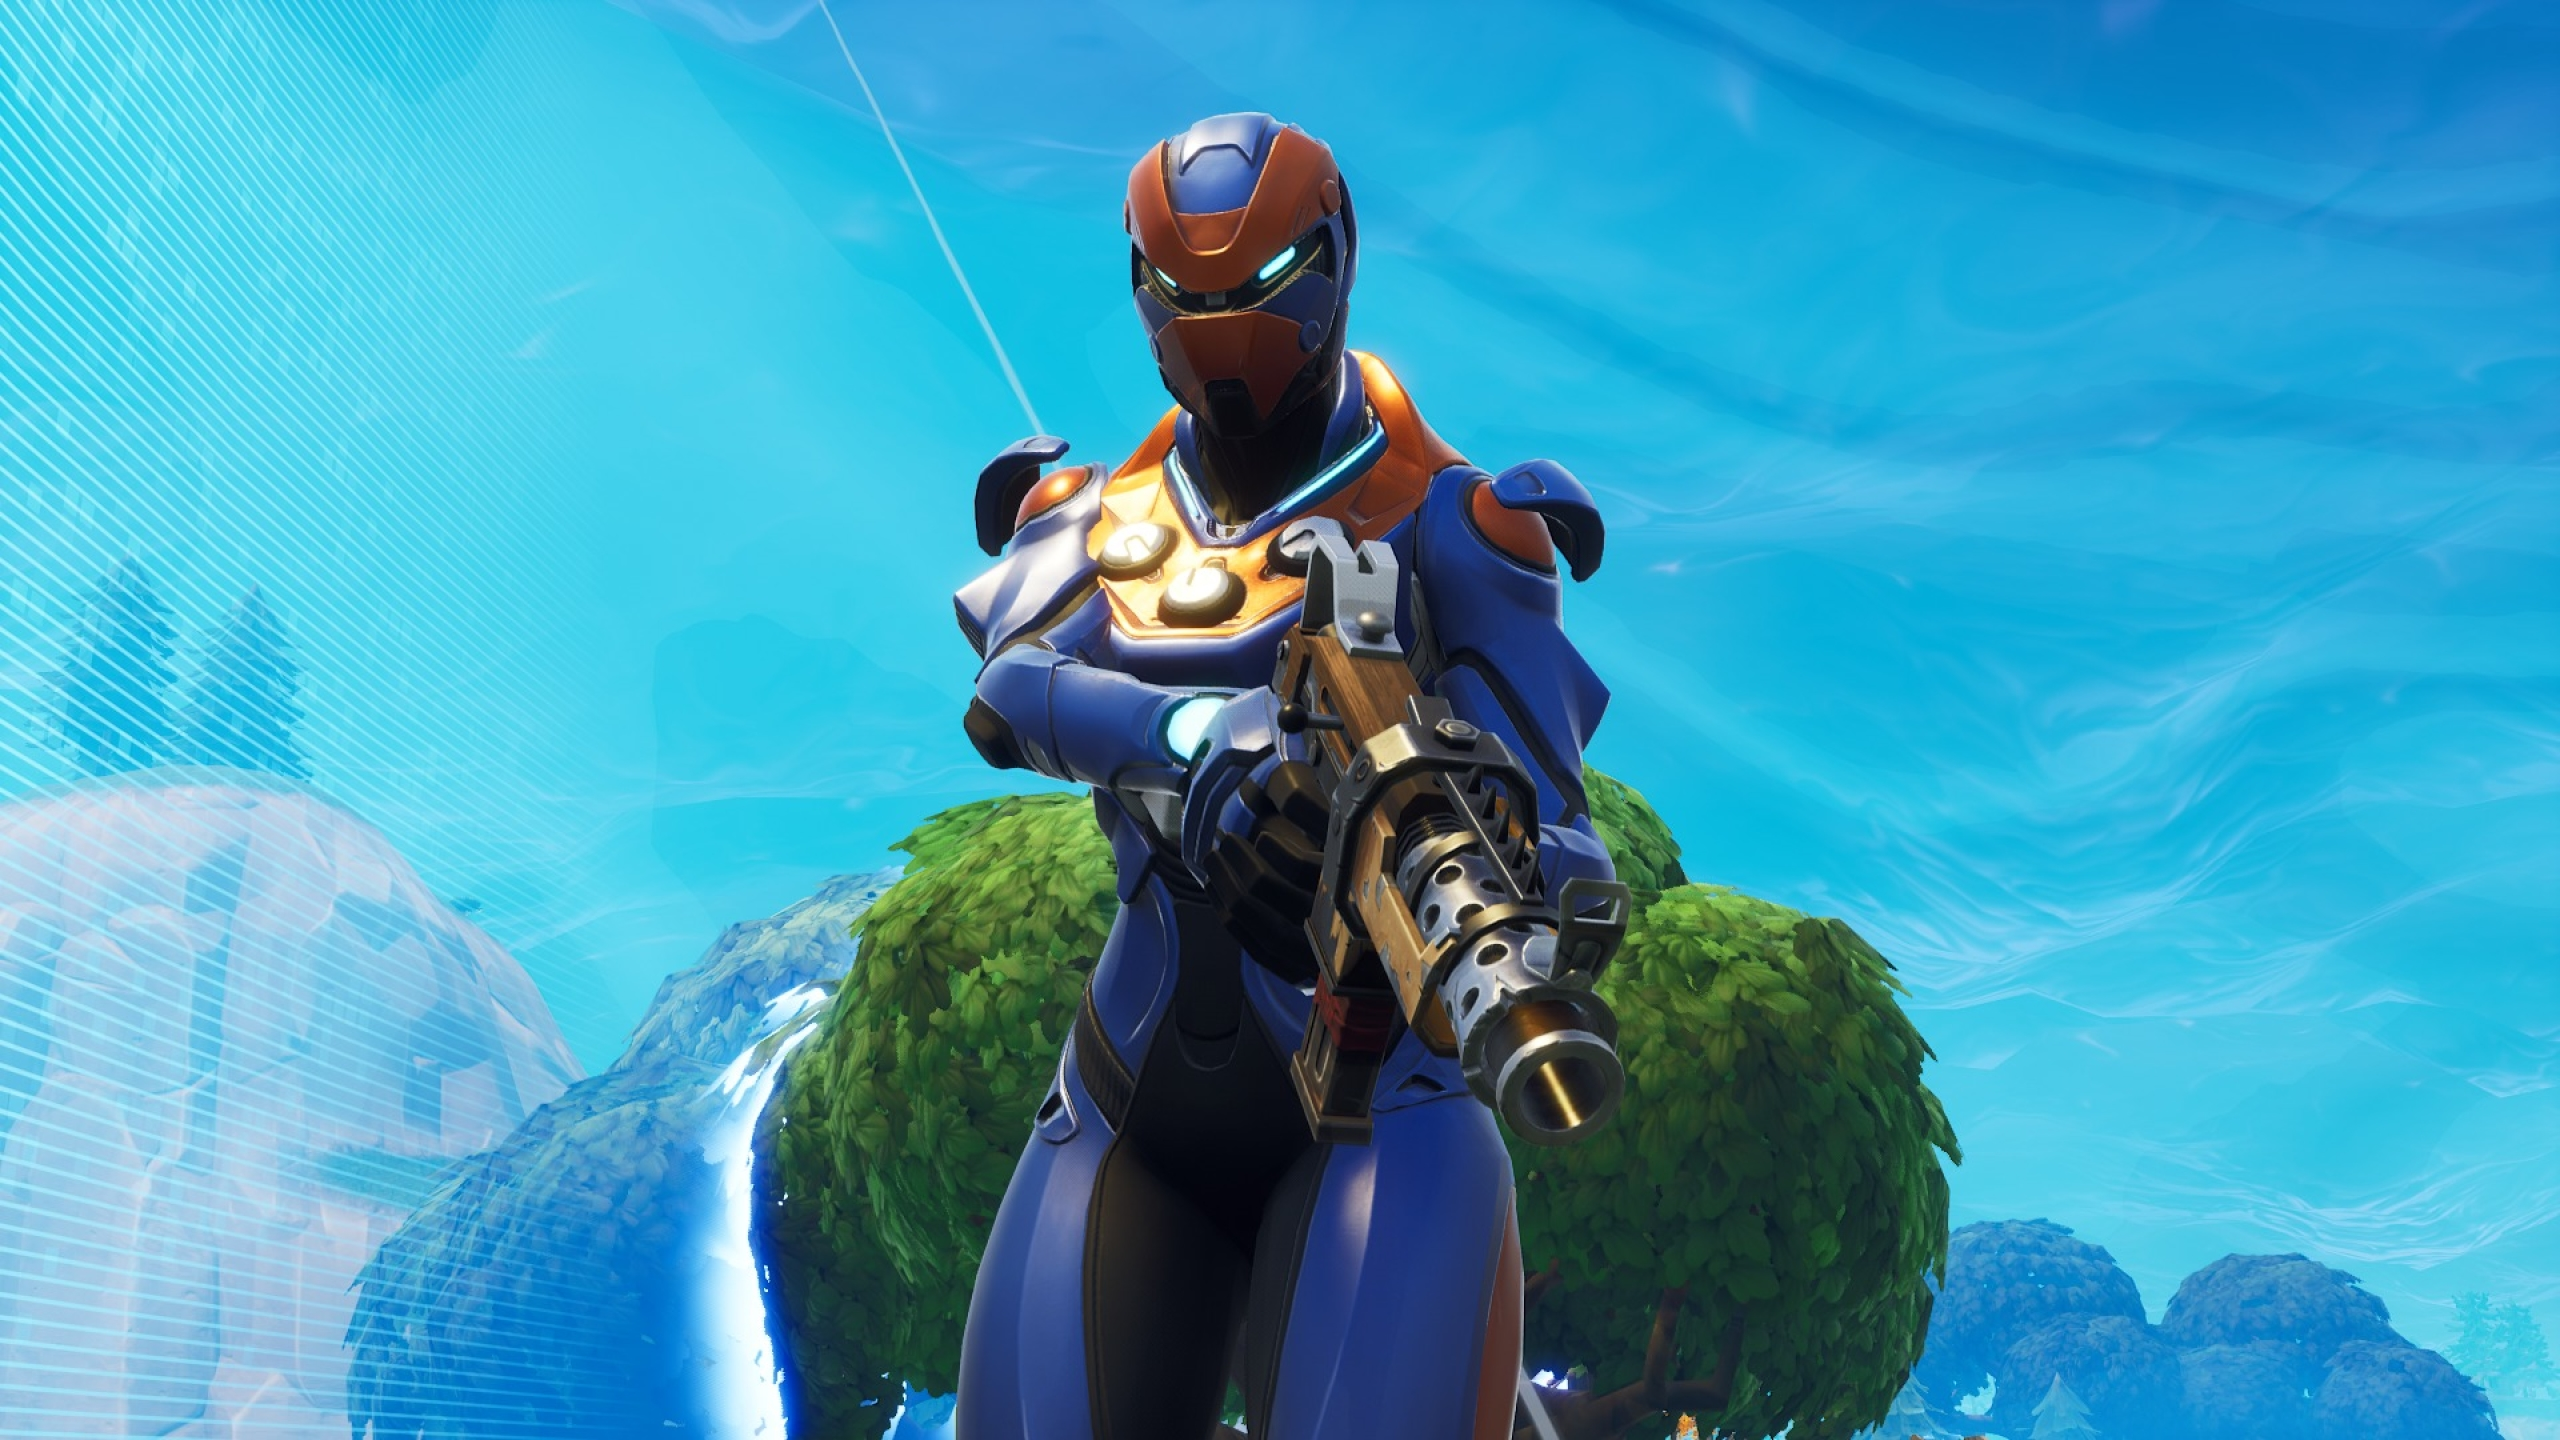 2560x1440 Fortnite Battle Royale Criterion 1440p Resolution